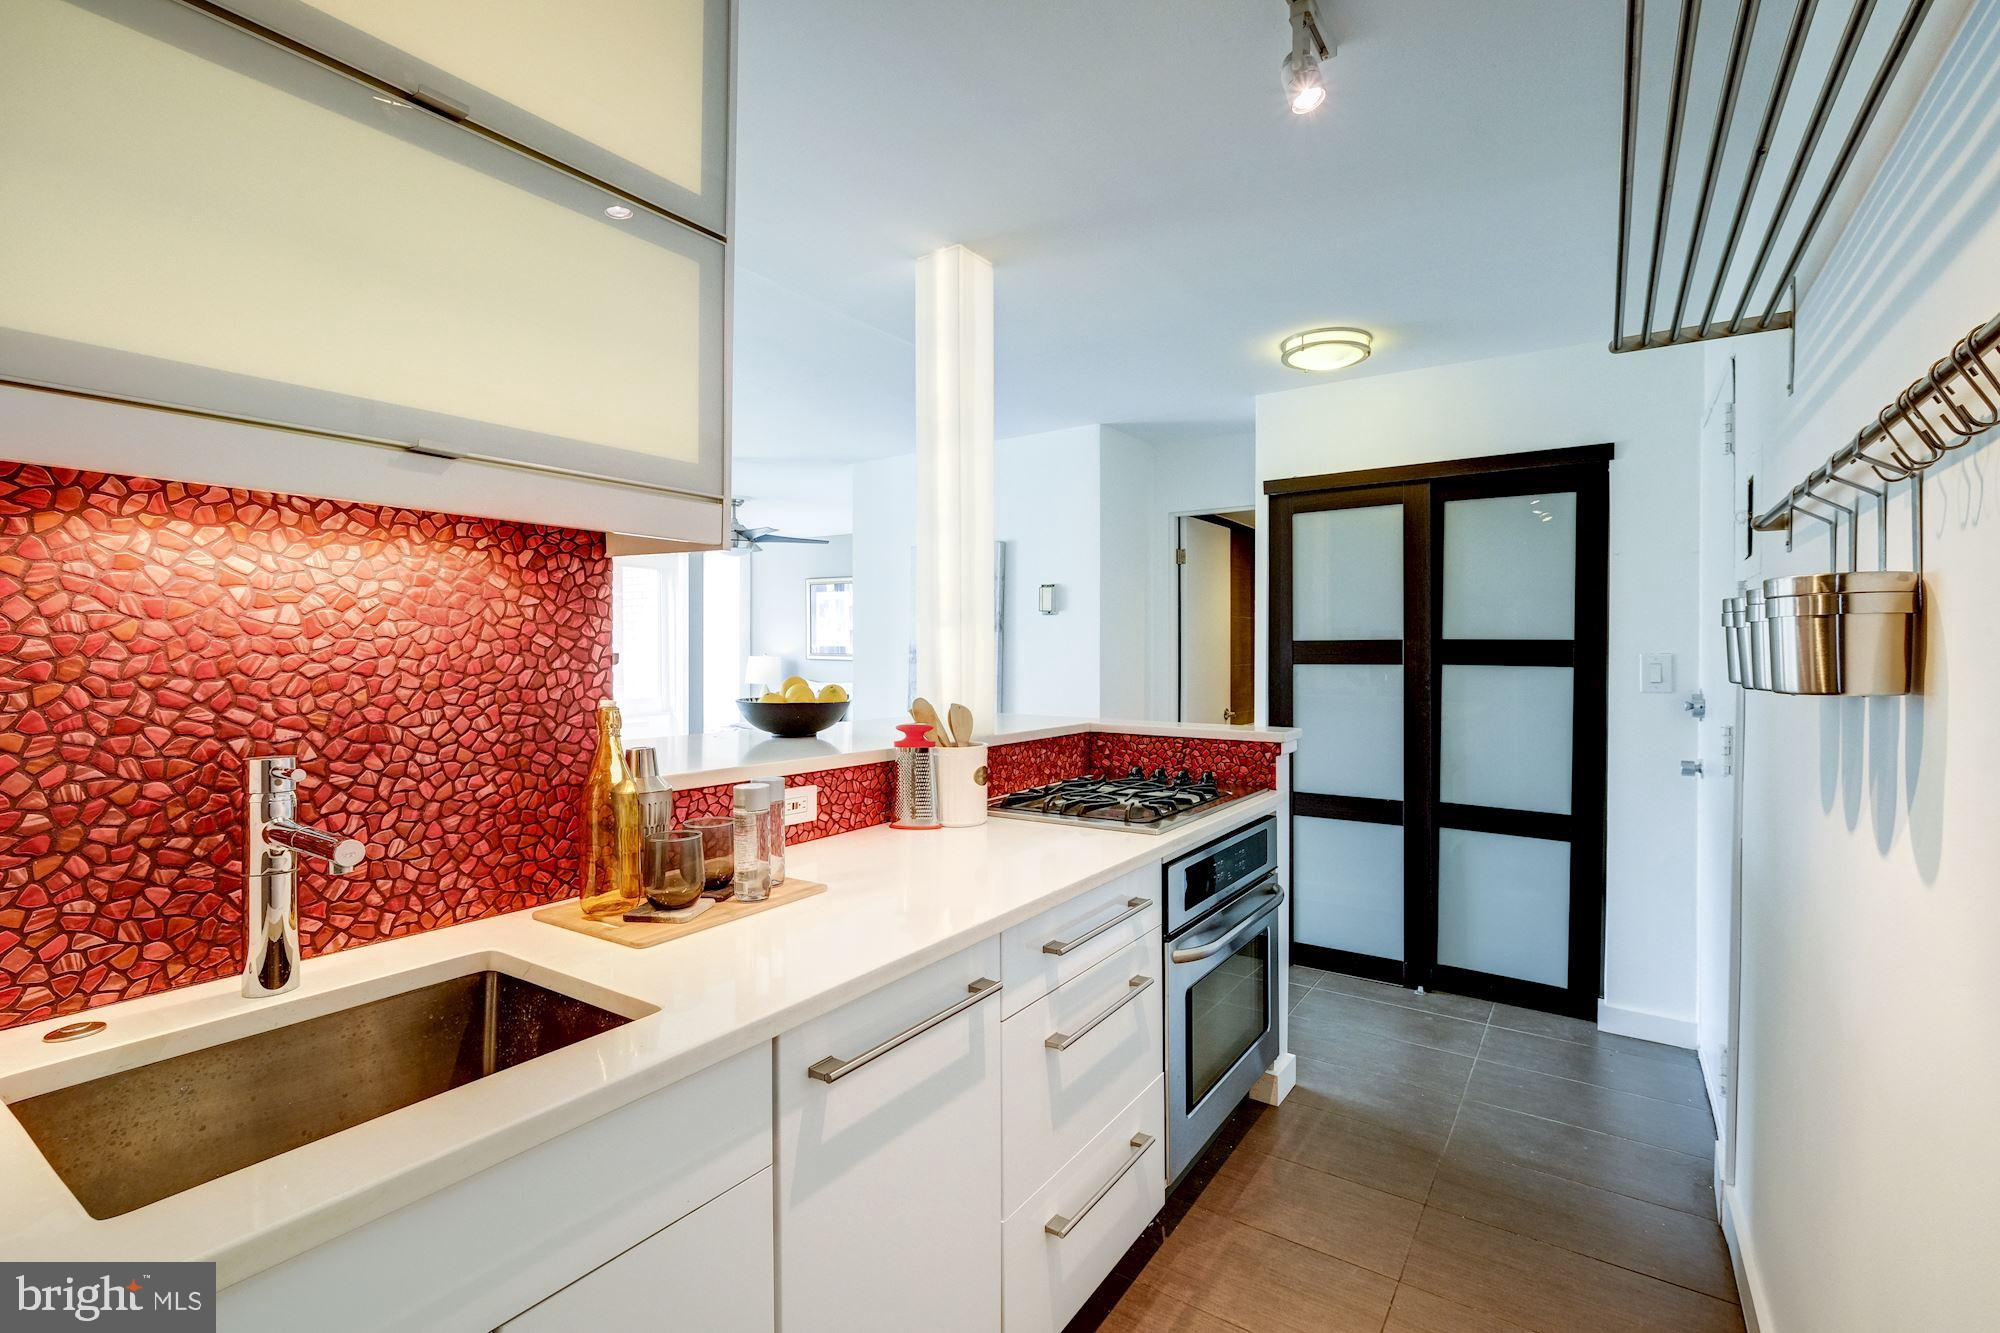 Impeccable Jr 1BR/1BA contemporary condo ideally located off of vibrant Dupont Circle. The south-fac